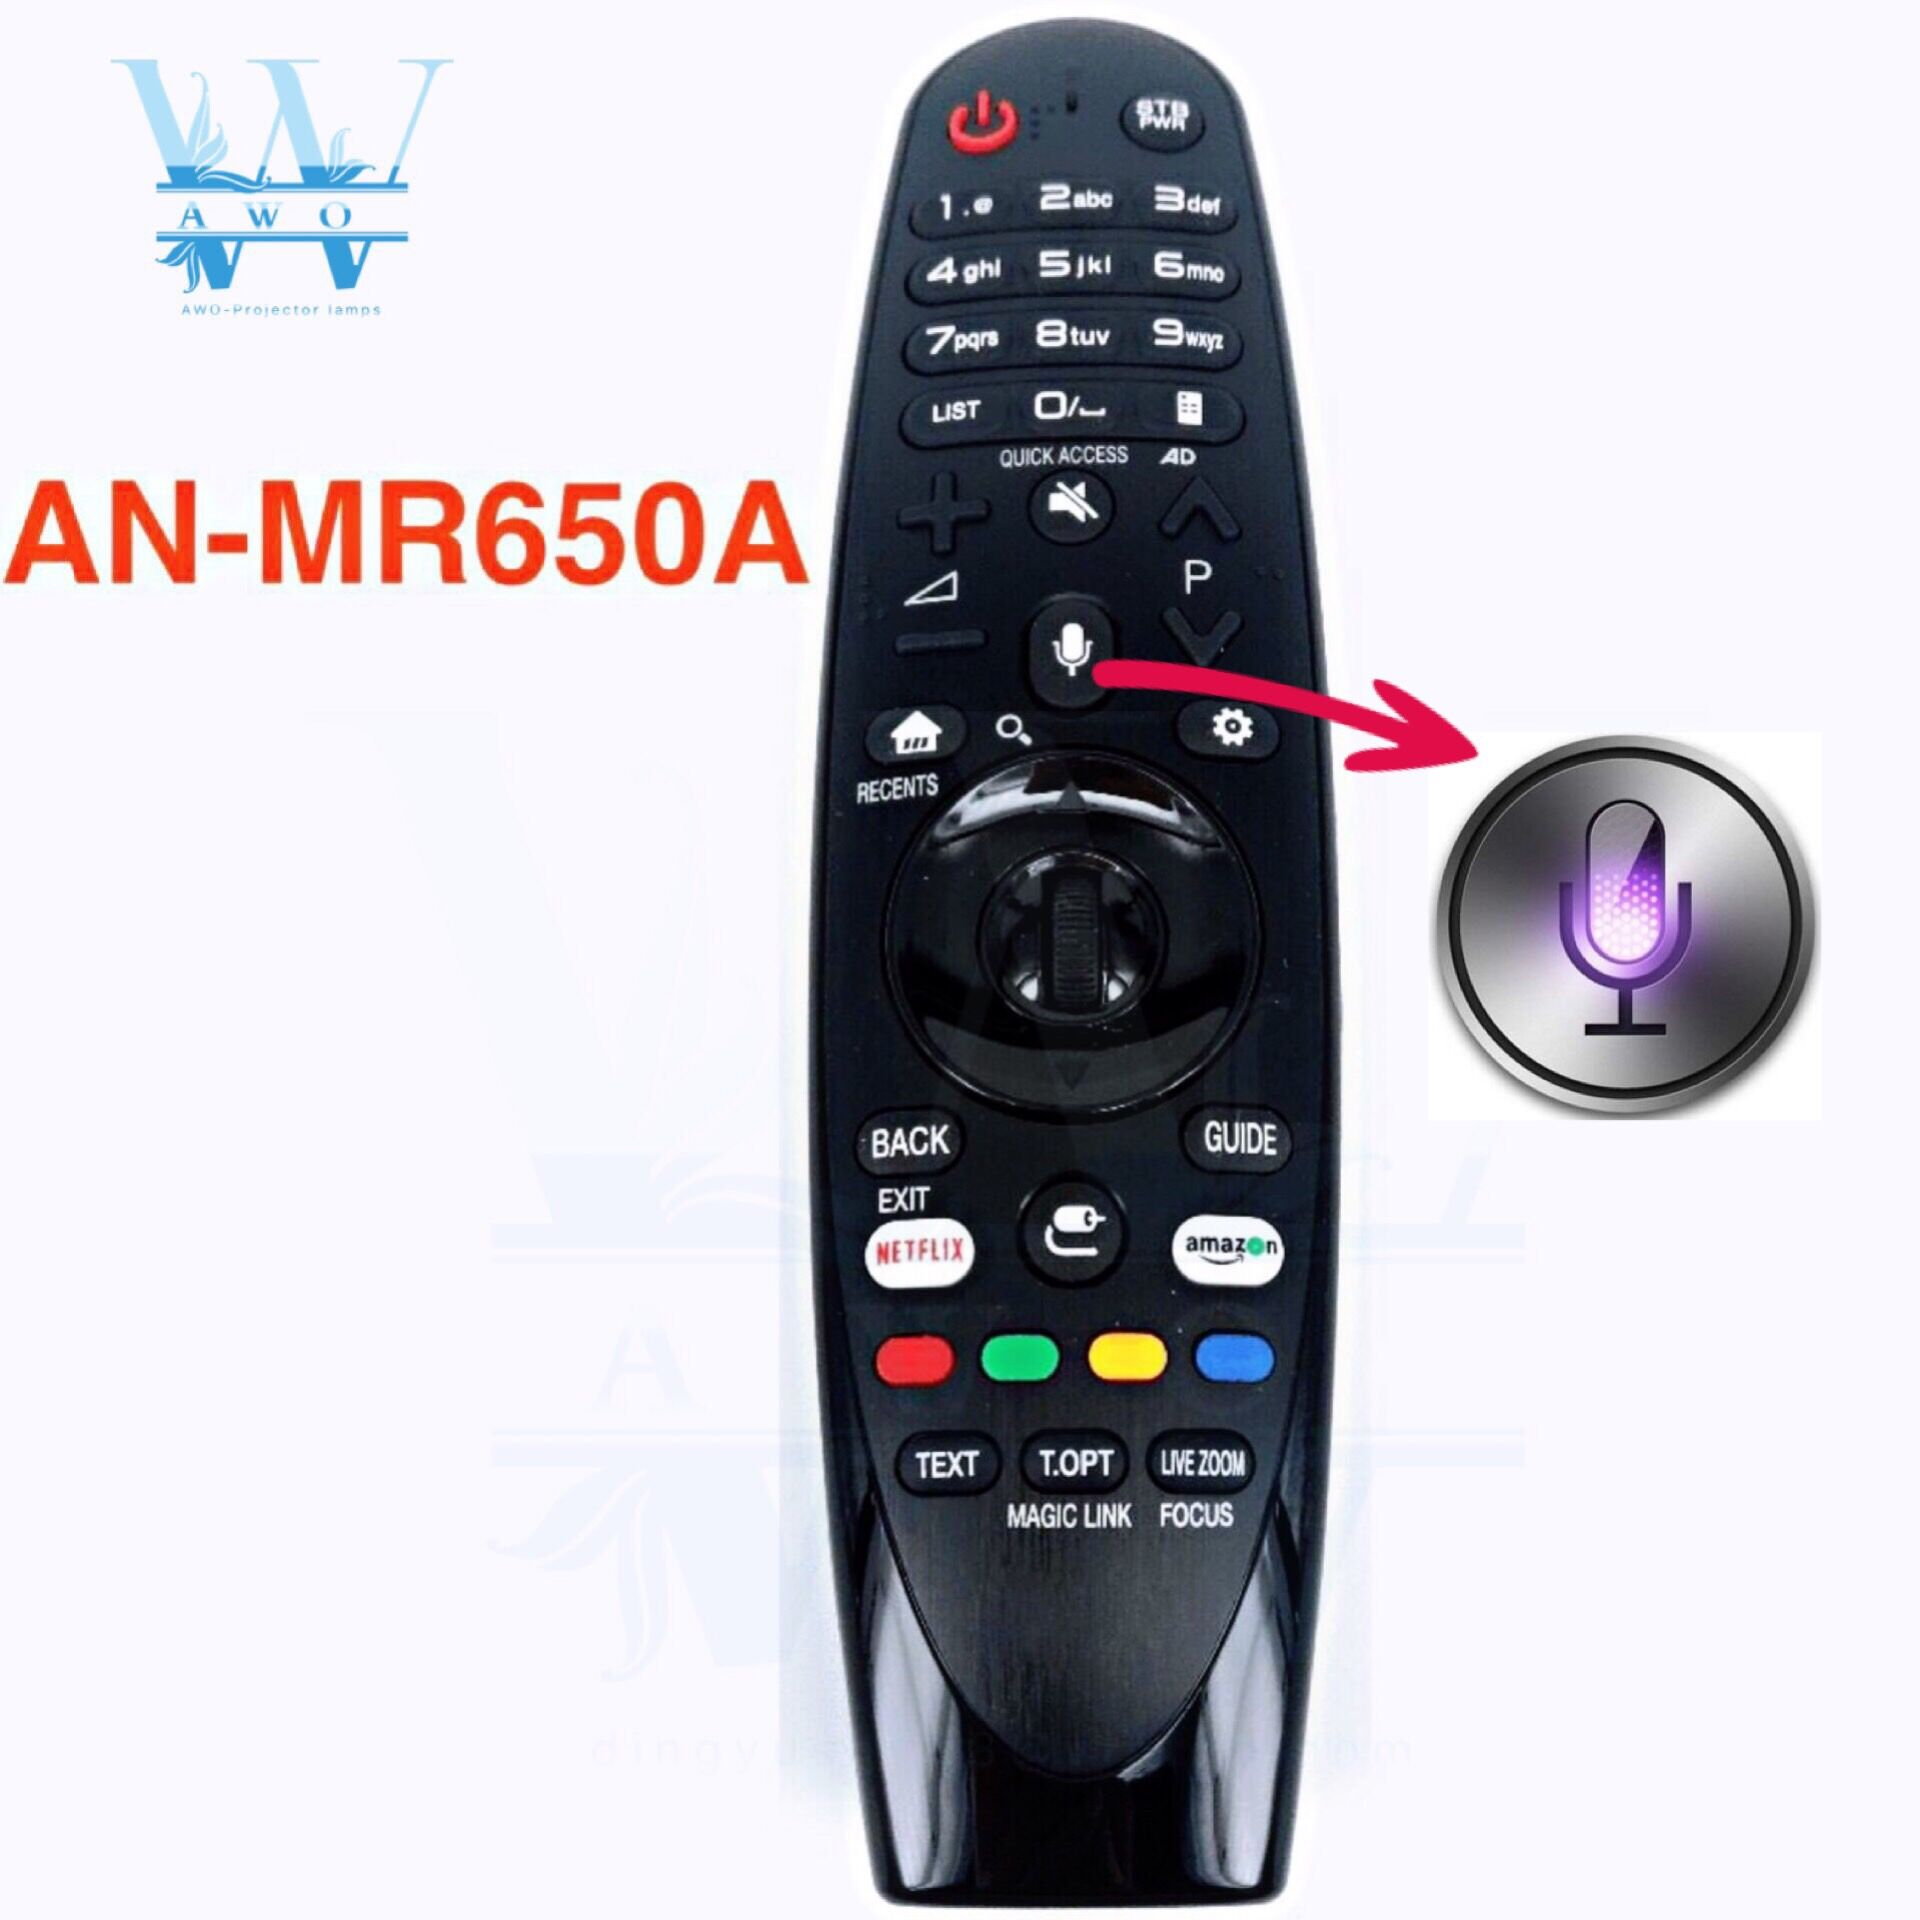 AWO 1PCS NEW Original AN MR650A For LG Magic Remote Control with Voice Mate for Select 2017 Smart television 65uj620y